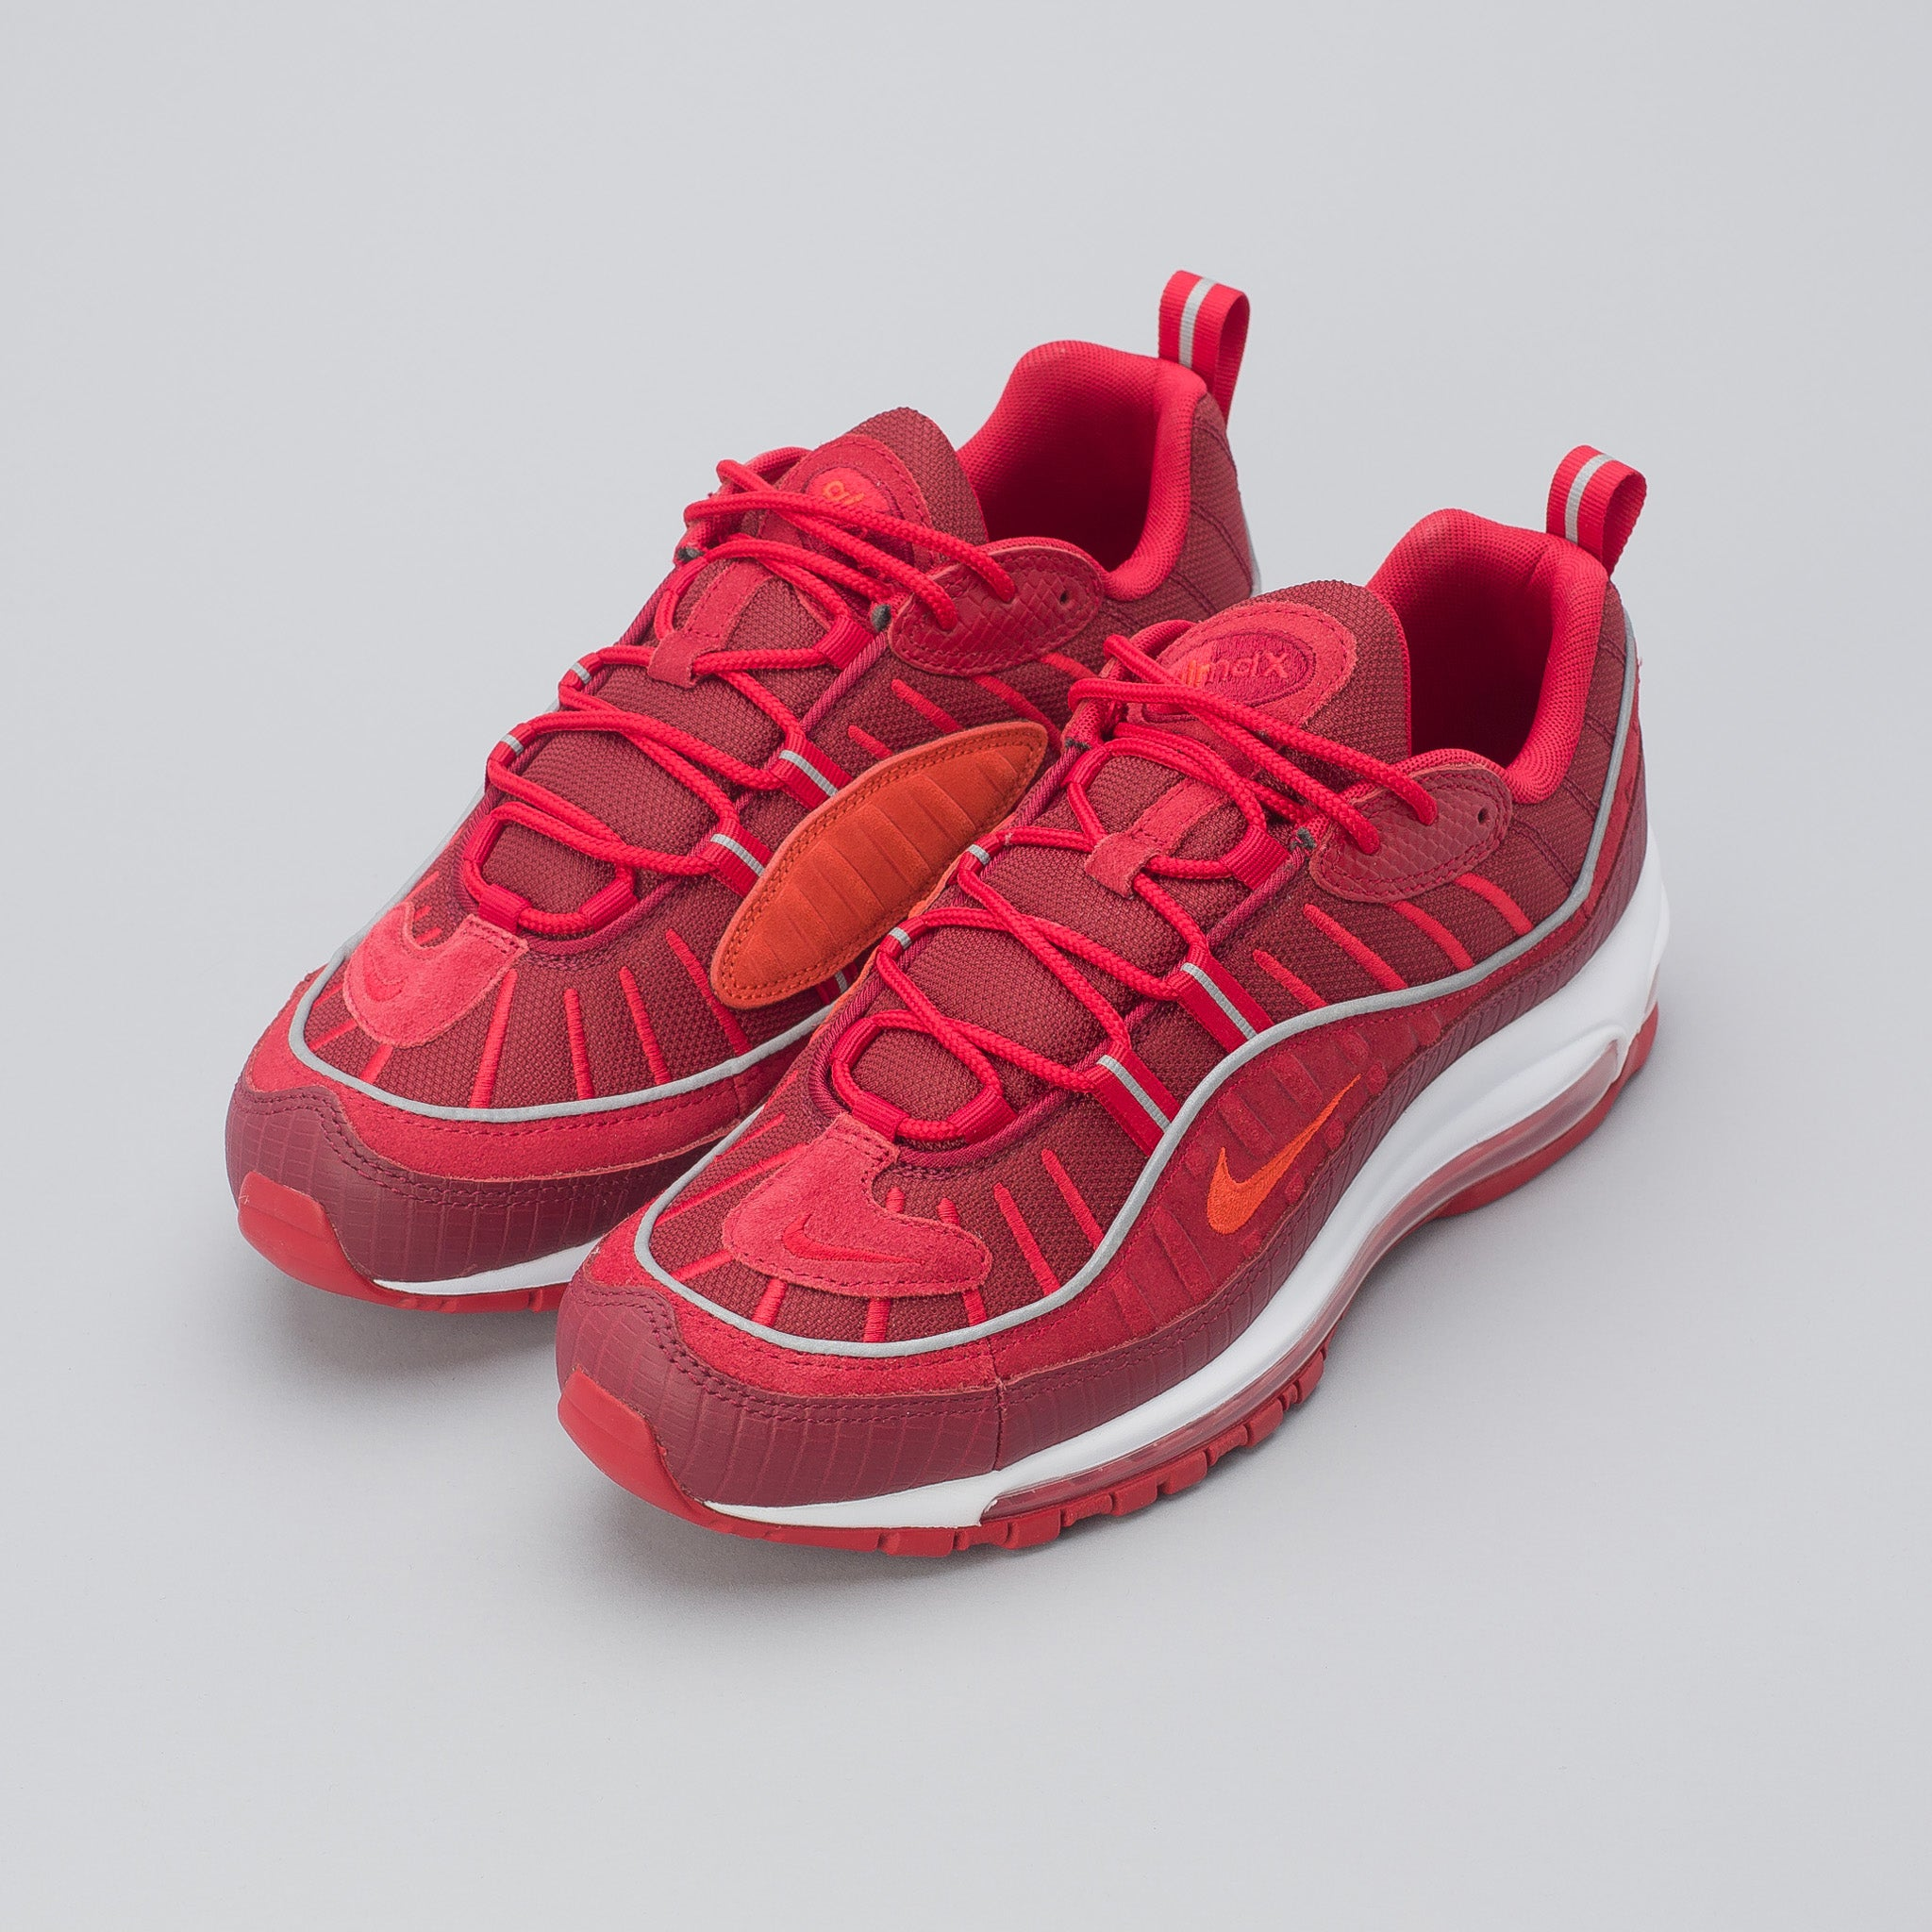 best website 4fffe 30e79 ... how to buy Air Max 98 SE in Team RedHabanero ...